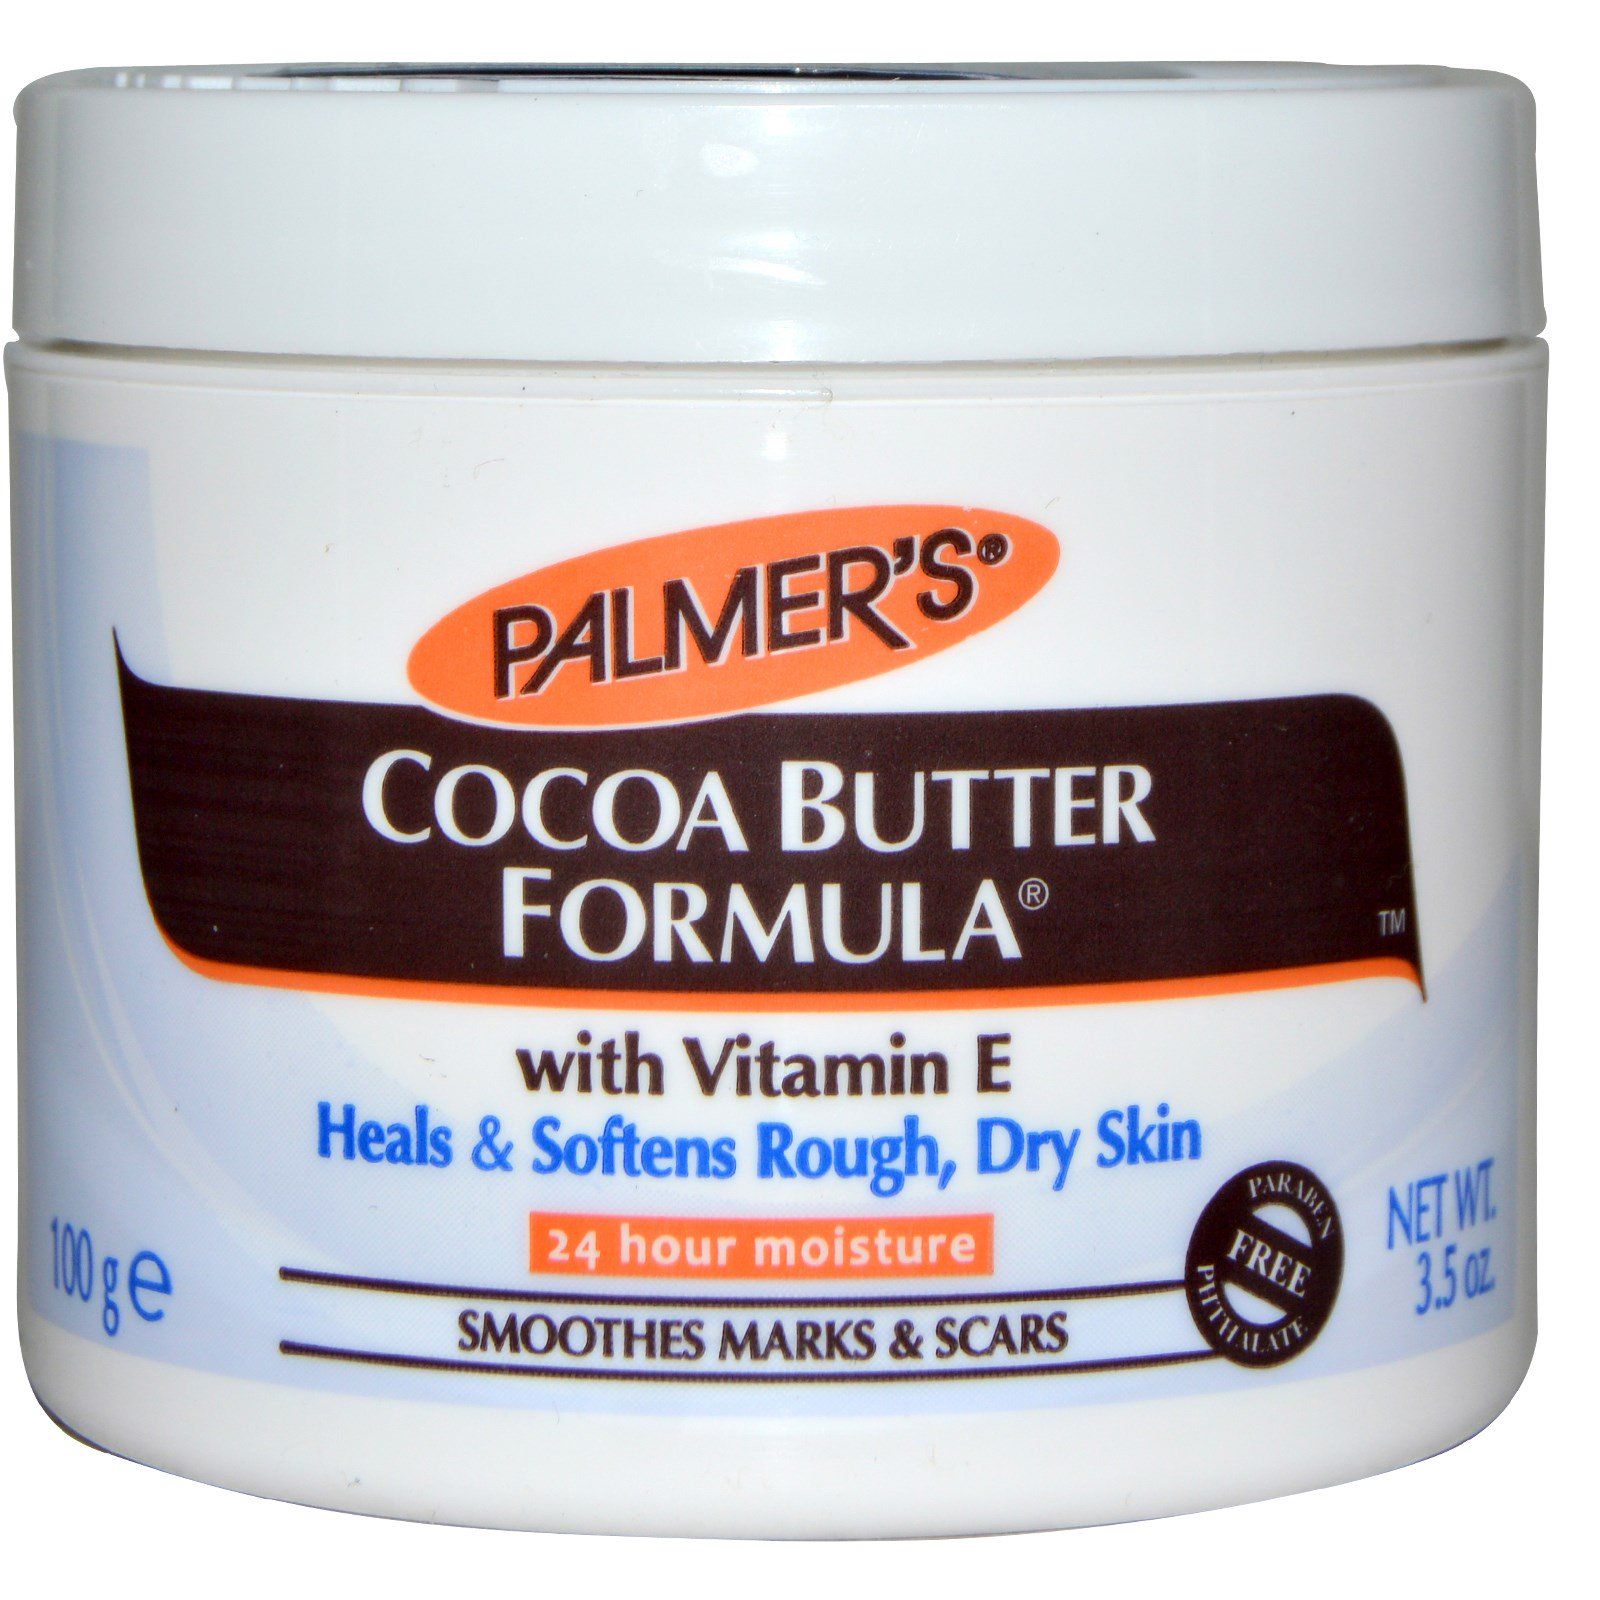 cocoa butter 1 cup/240 ml raw unscented cocoa butter 1 cup/240 ml coconut oil ½ cup/120 ml  lotion base or distilled water 3 tablespoons/45 ml lecithin 3 capsules vitamin.